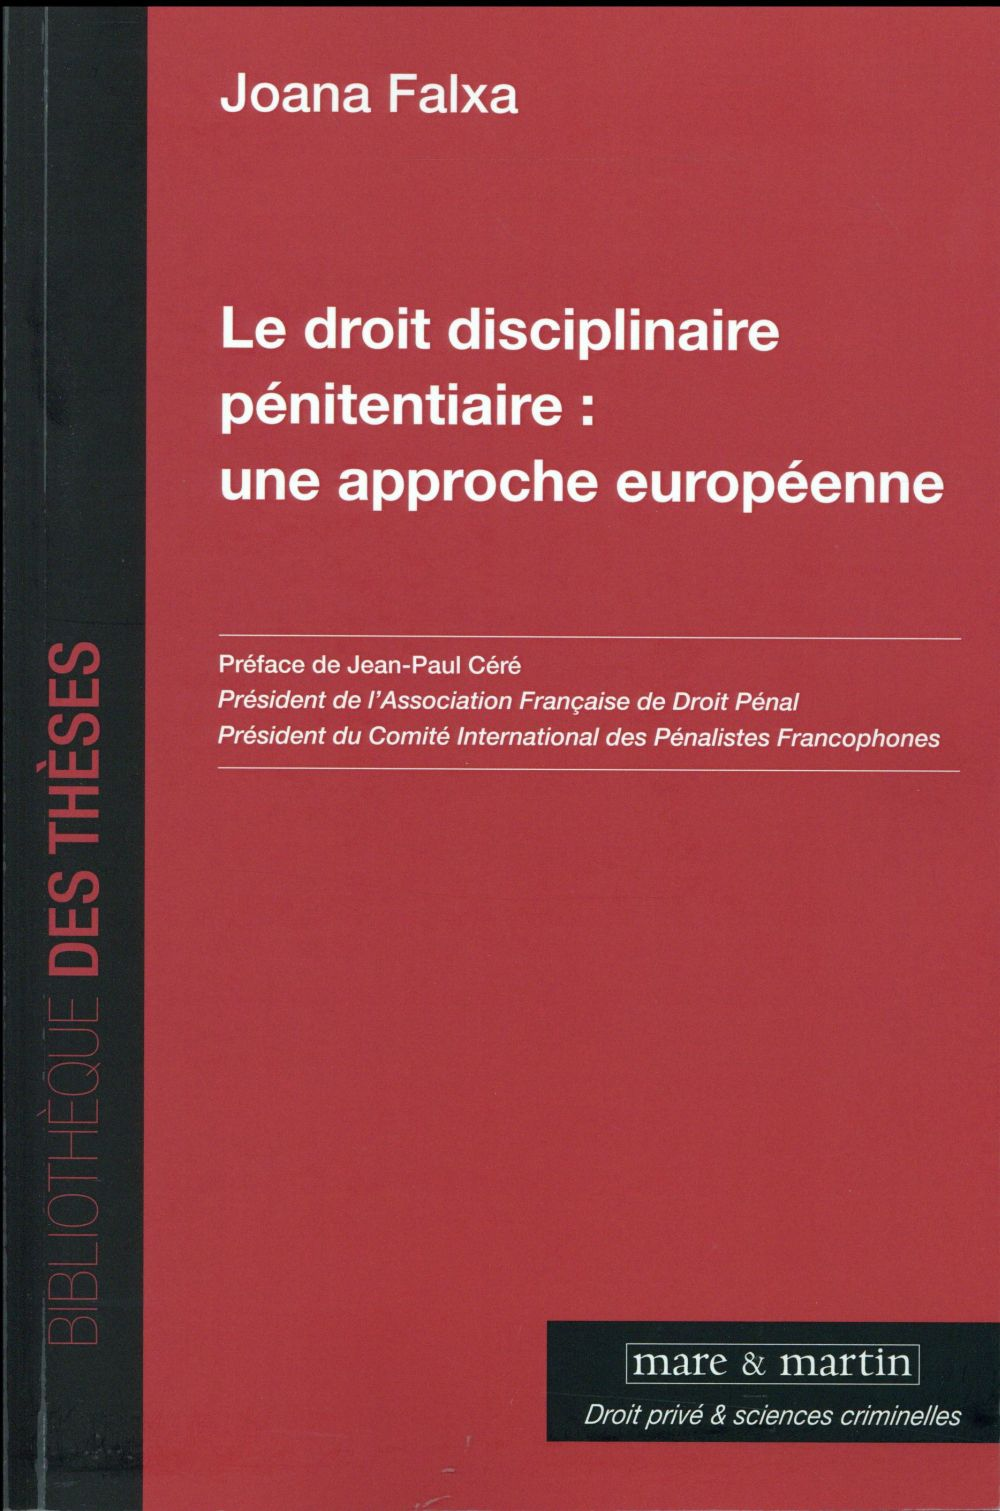 LE DROIT DISCIPLINAIRE PENITENTIAIRE, UNE APPROCHE EUROPEENNE ANALYSE DES SYSTEMES ANGLO-GALLOIS, ES